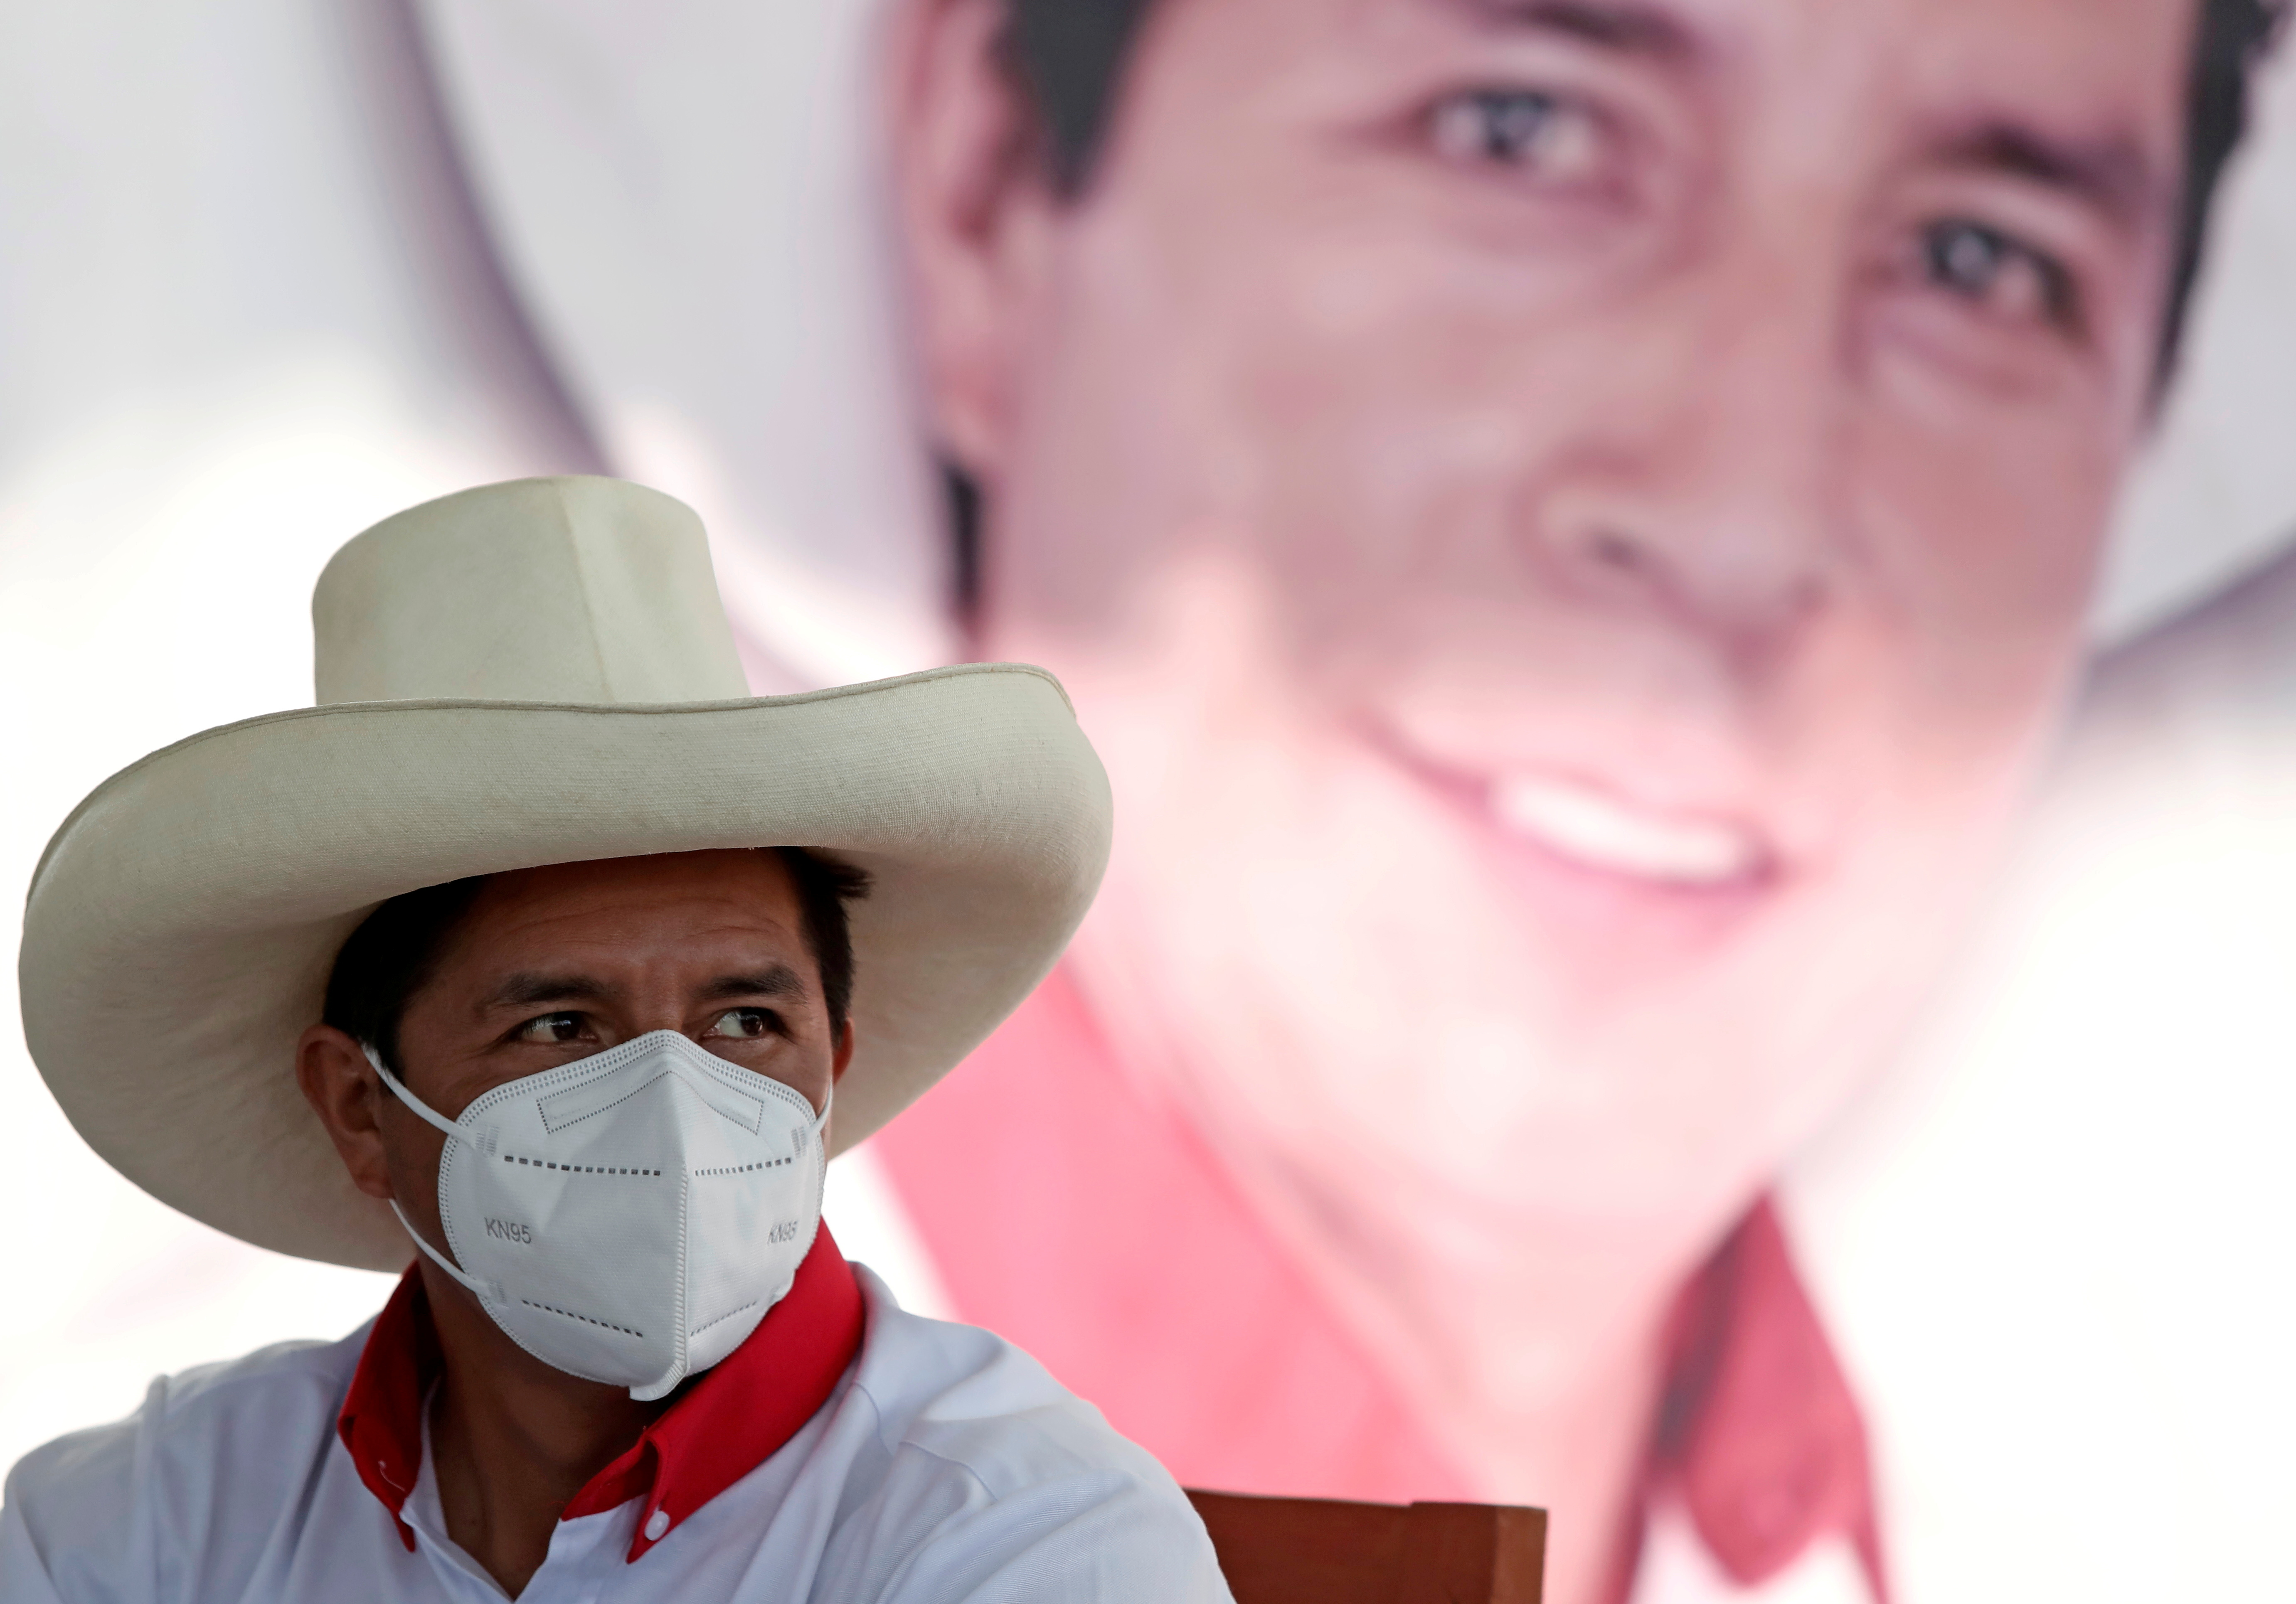 Peru's presidential candidate Pedro Castillo of Peru Libre party attends a news conference before a rally in Lima, Peru April 27, 2021. REUTERS/Angela Ponce